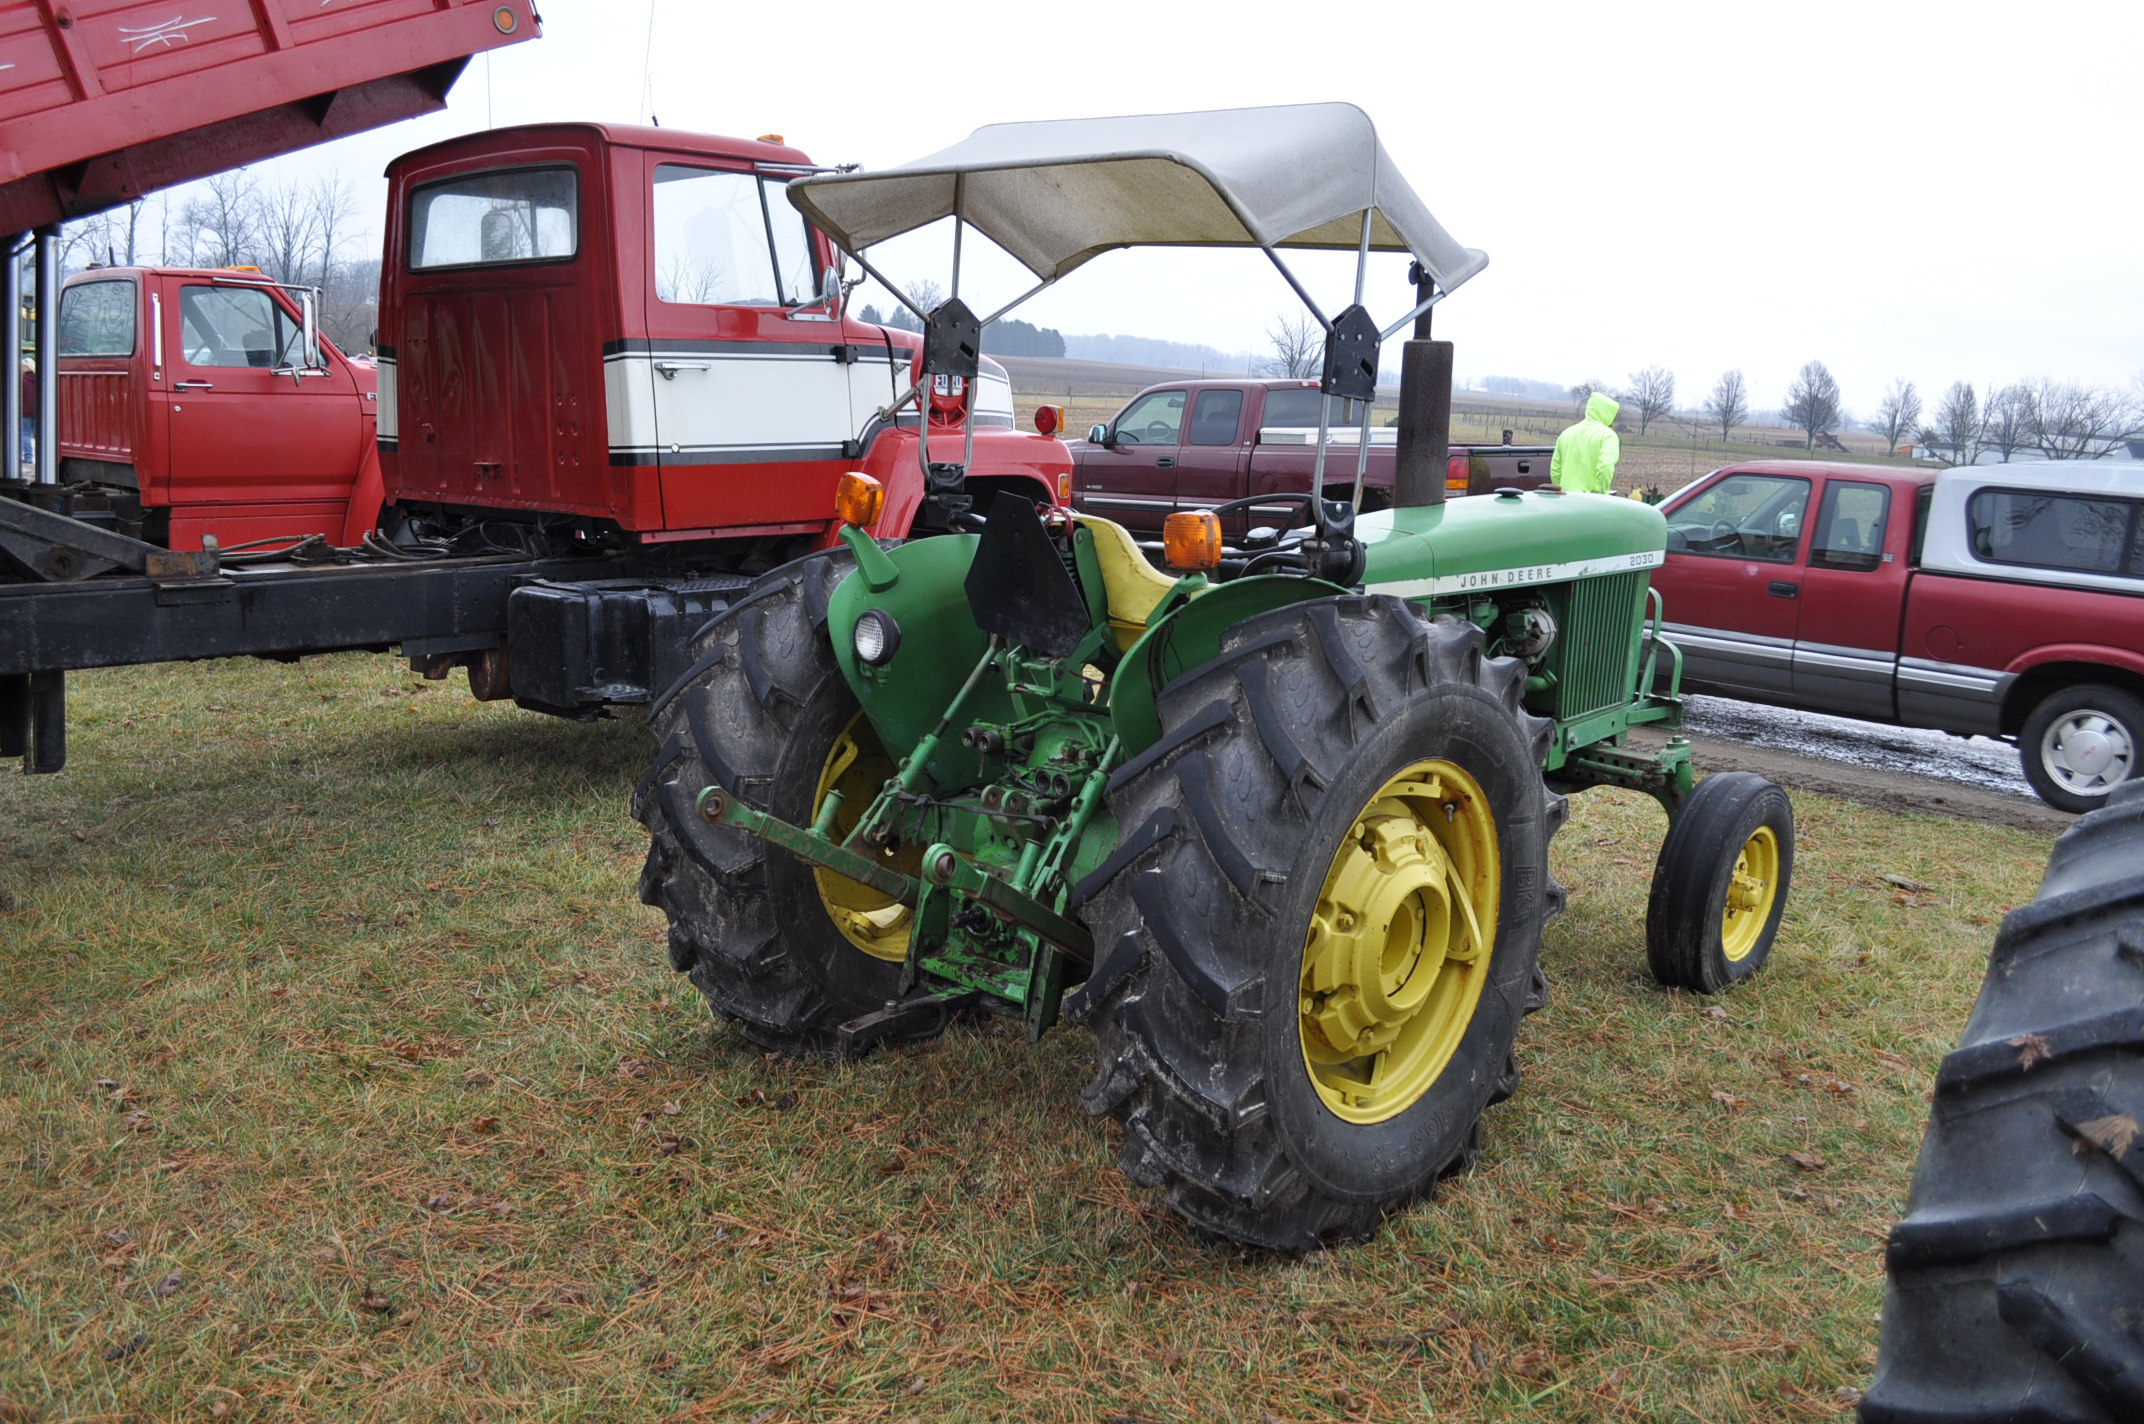 John Deere 2030 tractor, diesel, 16.9-28 rear, 7.5-15 front, canopy, power shuttle, 2 hyd remotes, - Image 3 of 20